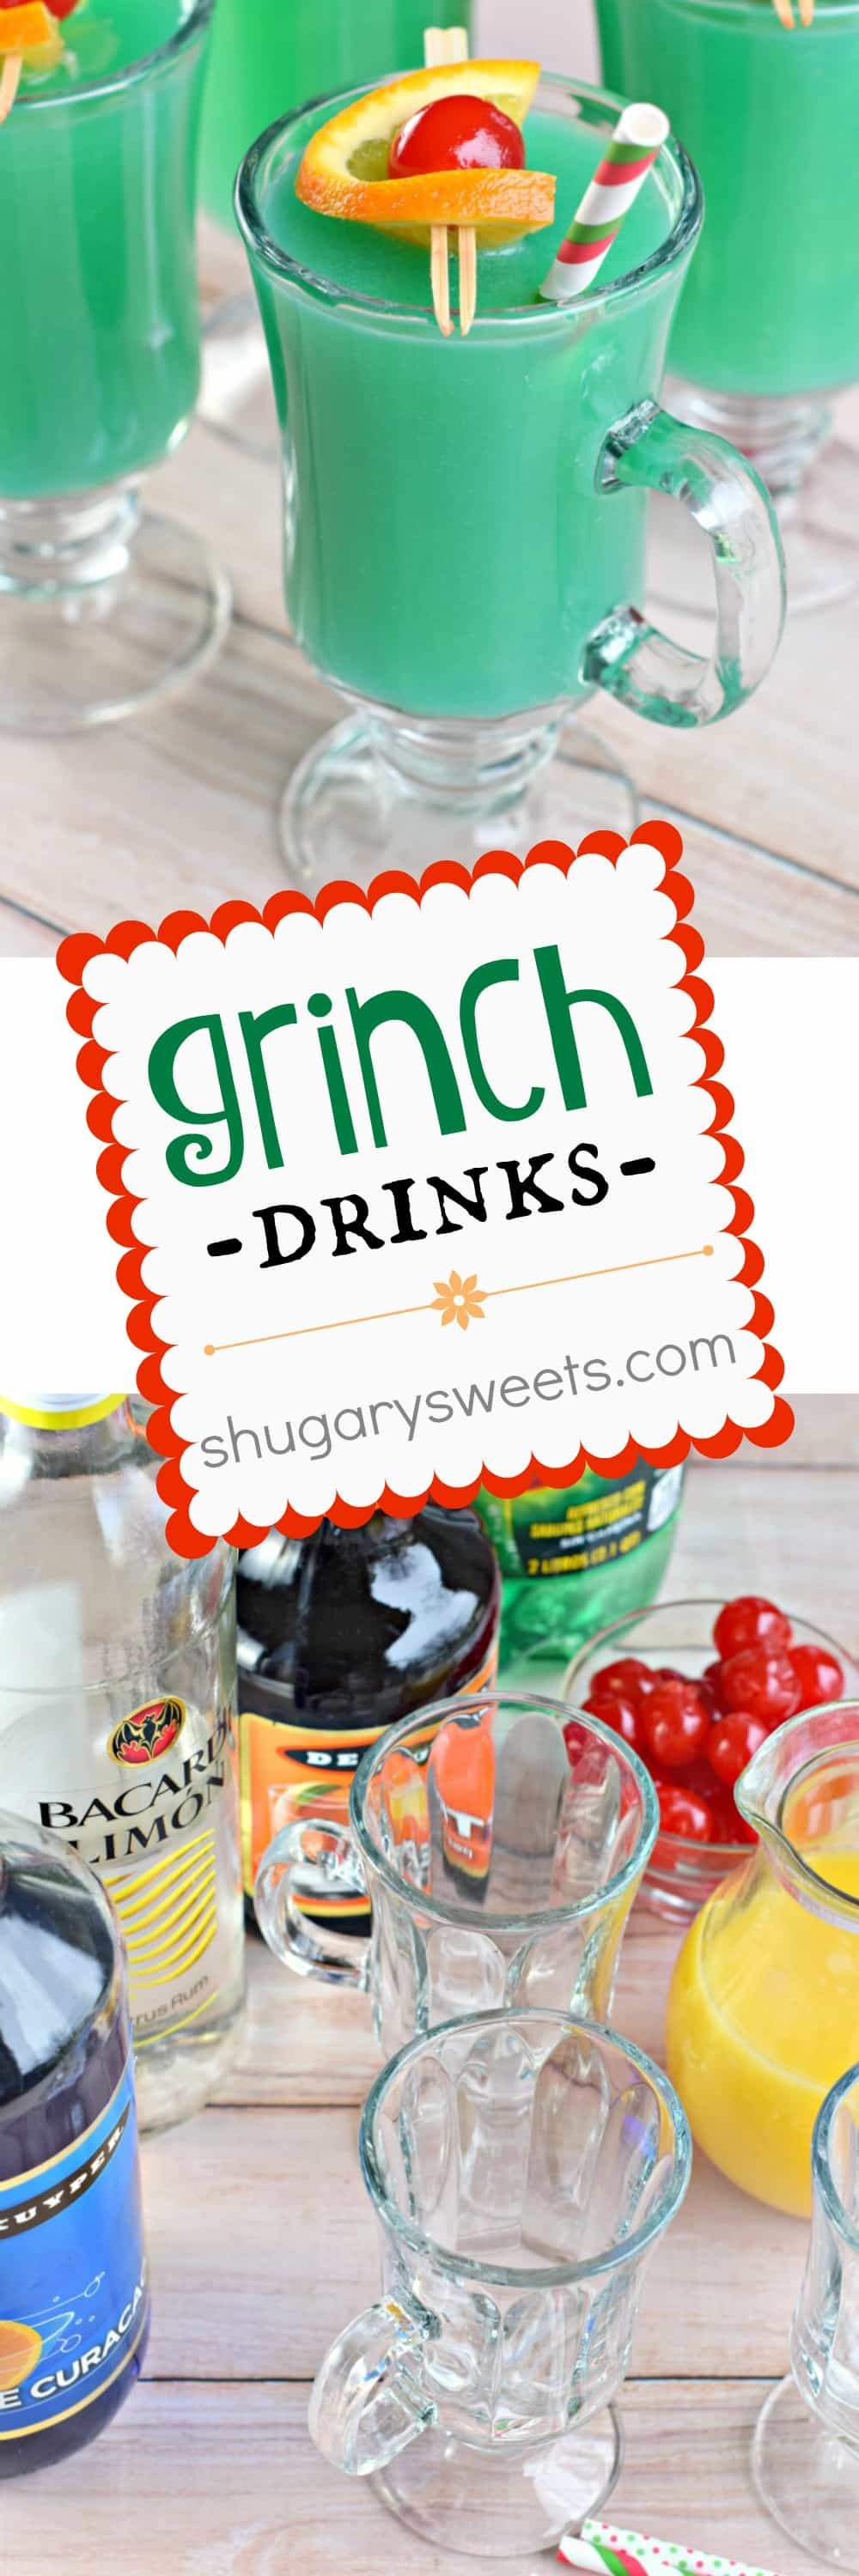 The grinch drink peach schnapps myideasbedroom com